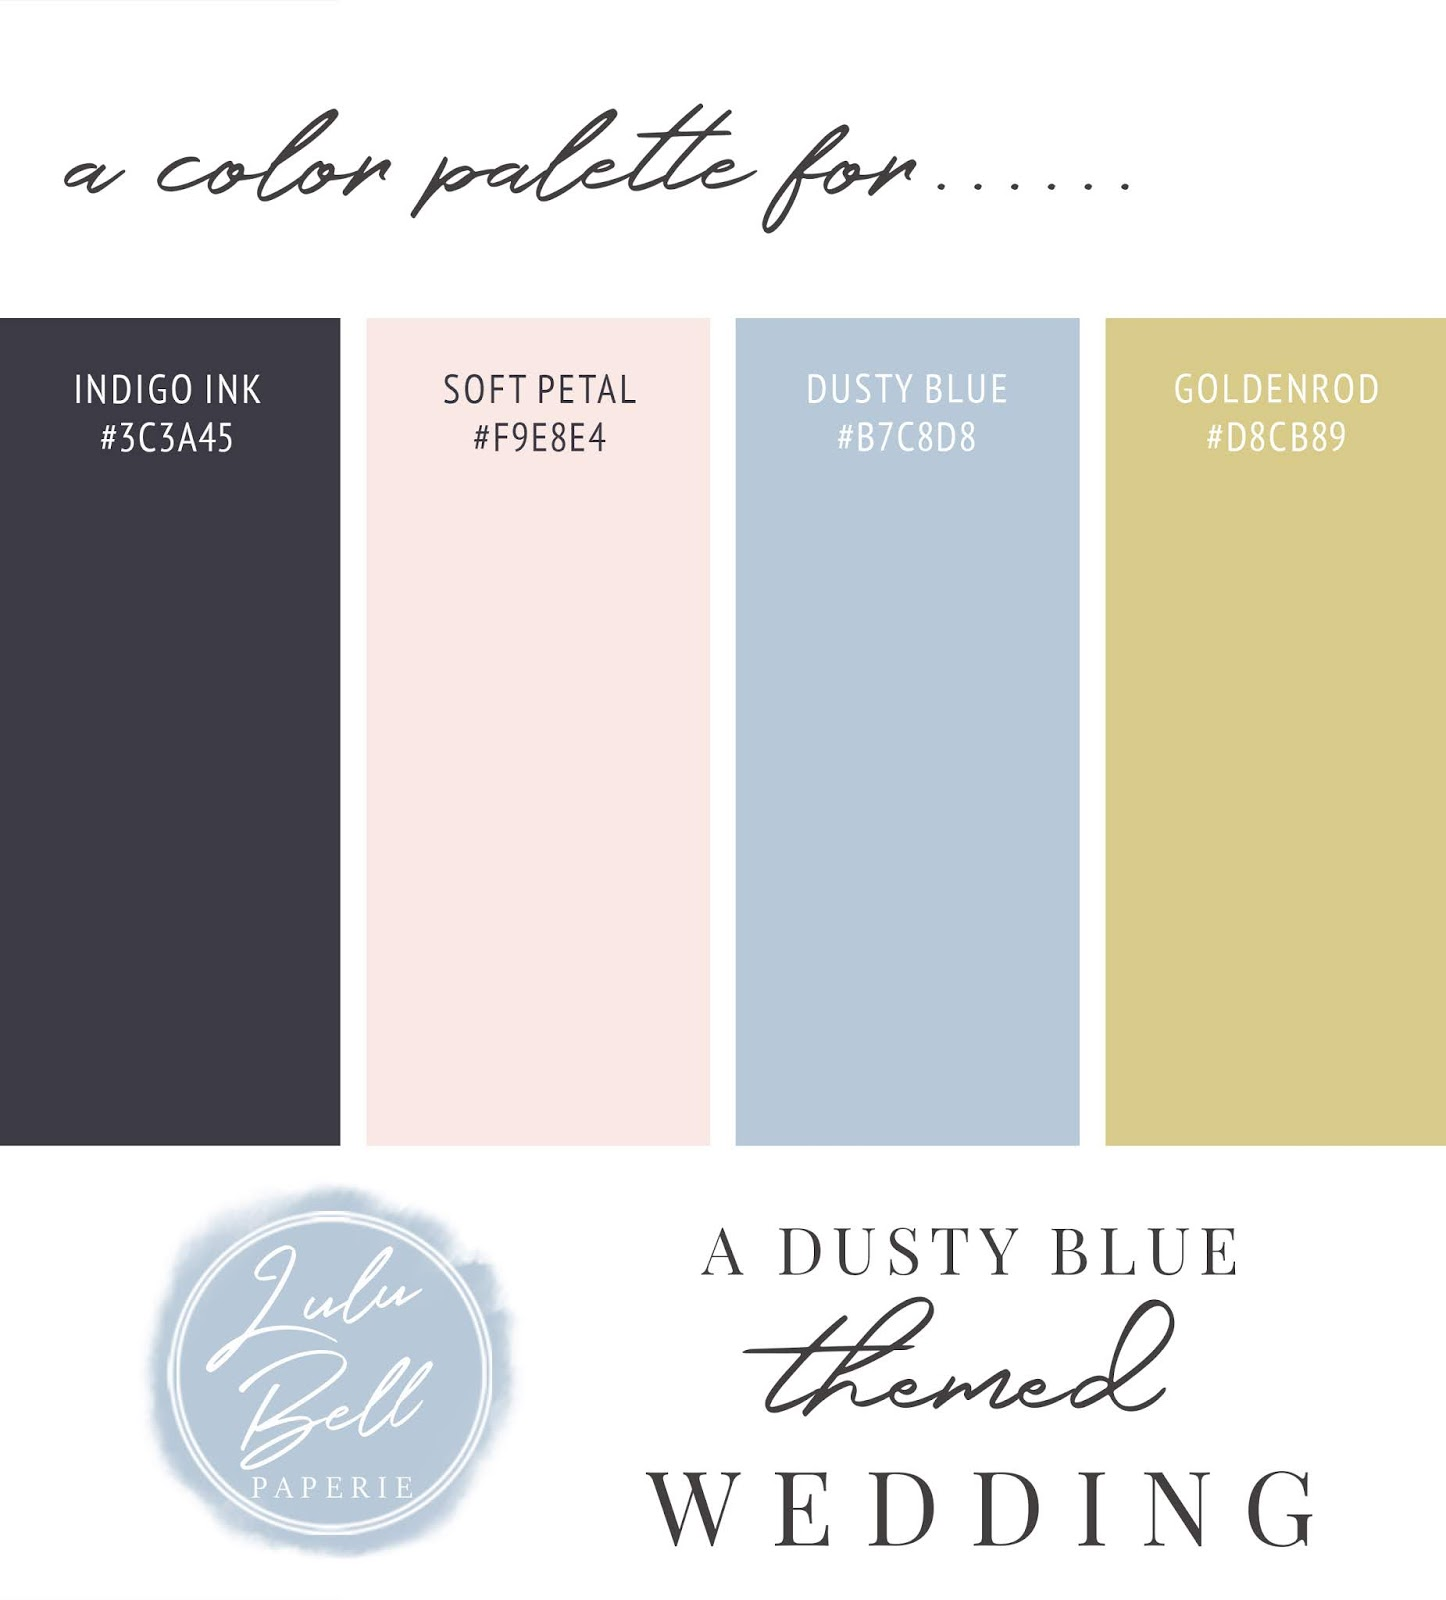 Dusty Blue, Gold, Pink, and Navy Wedding Color Palette Swatch Card : Indigo Ink, Soft Petal Pink, Dusty Blue, and Goldenrod